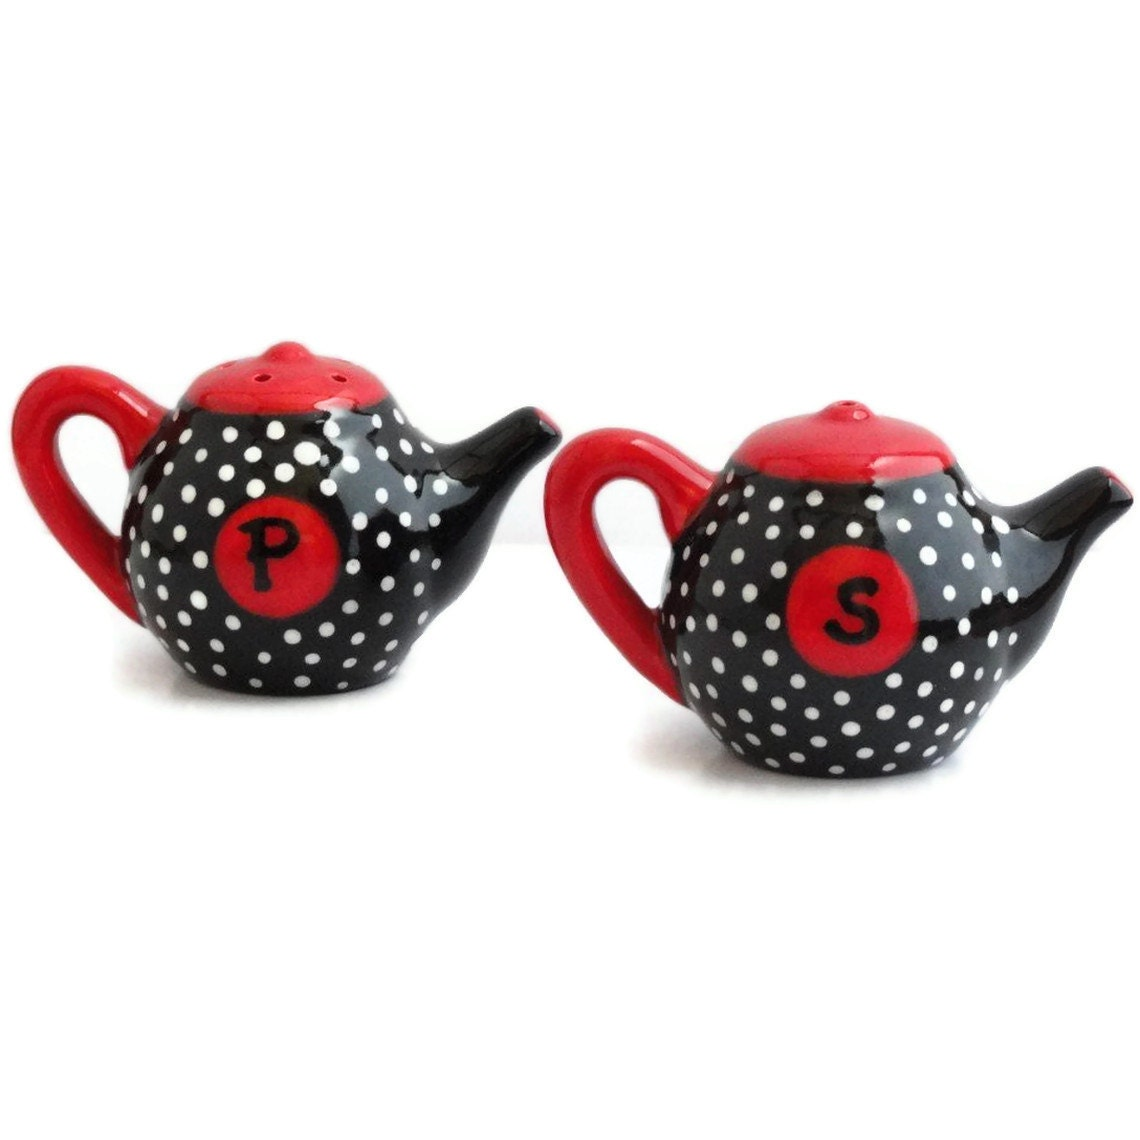 items similar to ceramic salt and pepper shakers teapot shaped in black and red with white polka. Black Bedroom Furniture Sets. Home Design Ideas